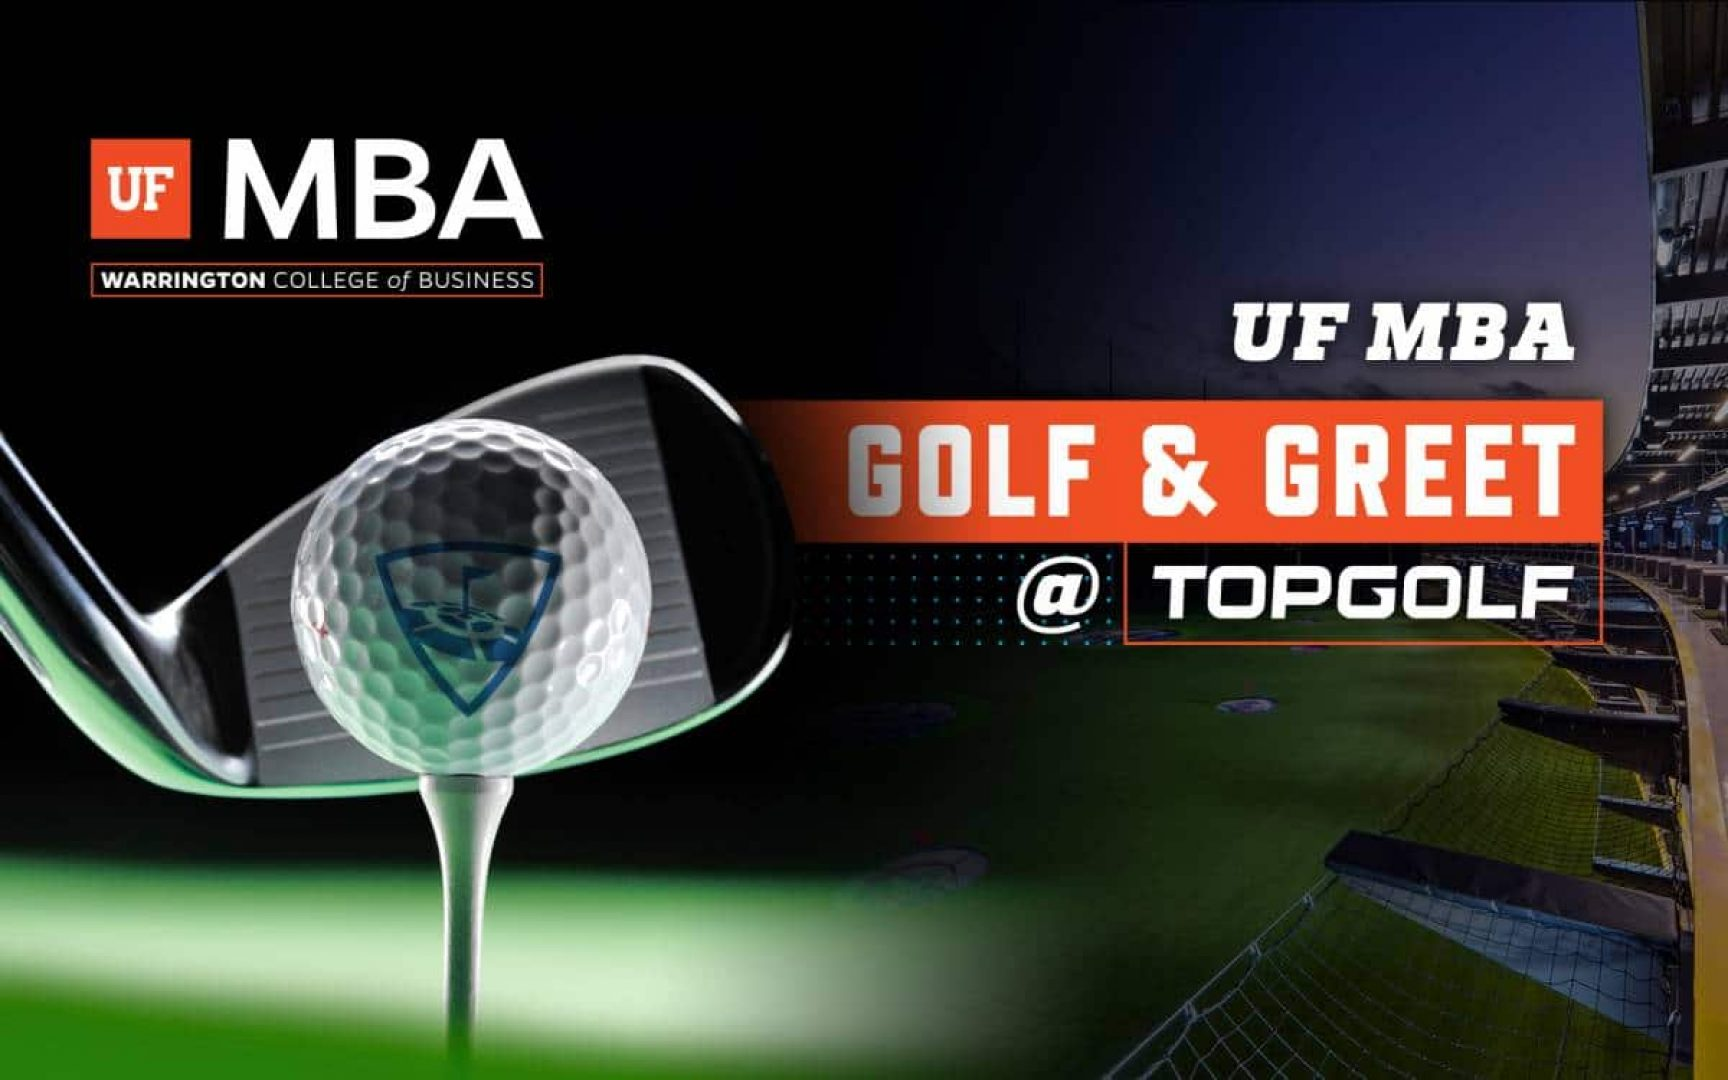 close up of a putter hitting a golf ball with the UF MBA logo in the top left corner and UF MBA Golf & Greet at Topgolf to the right